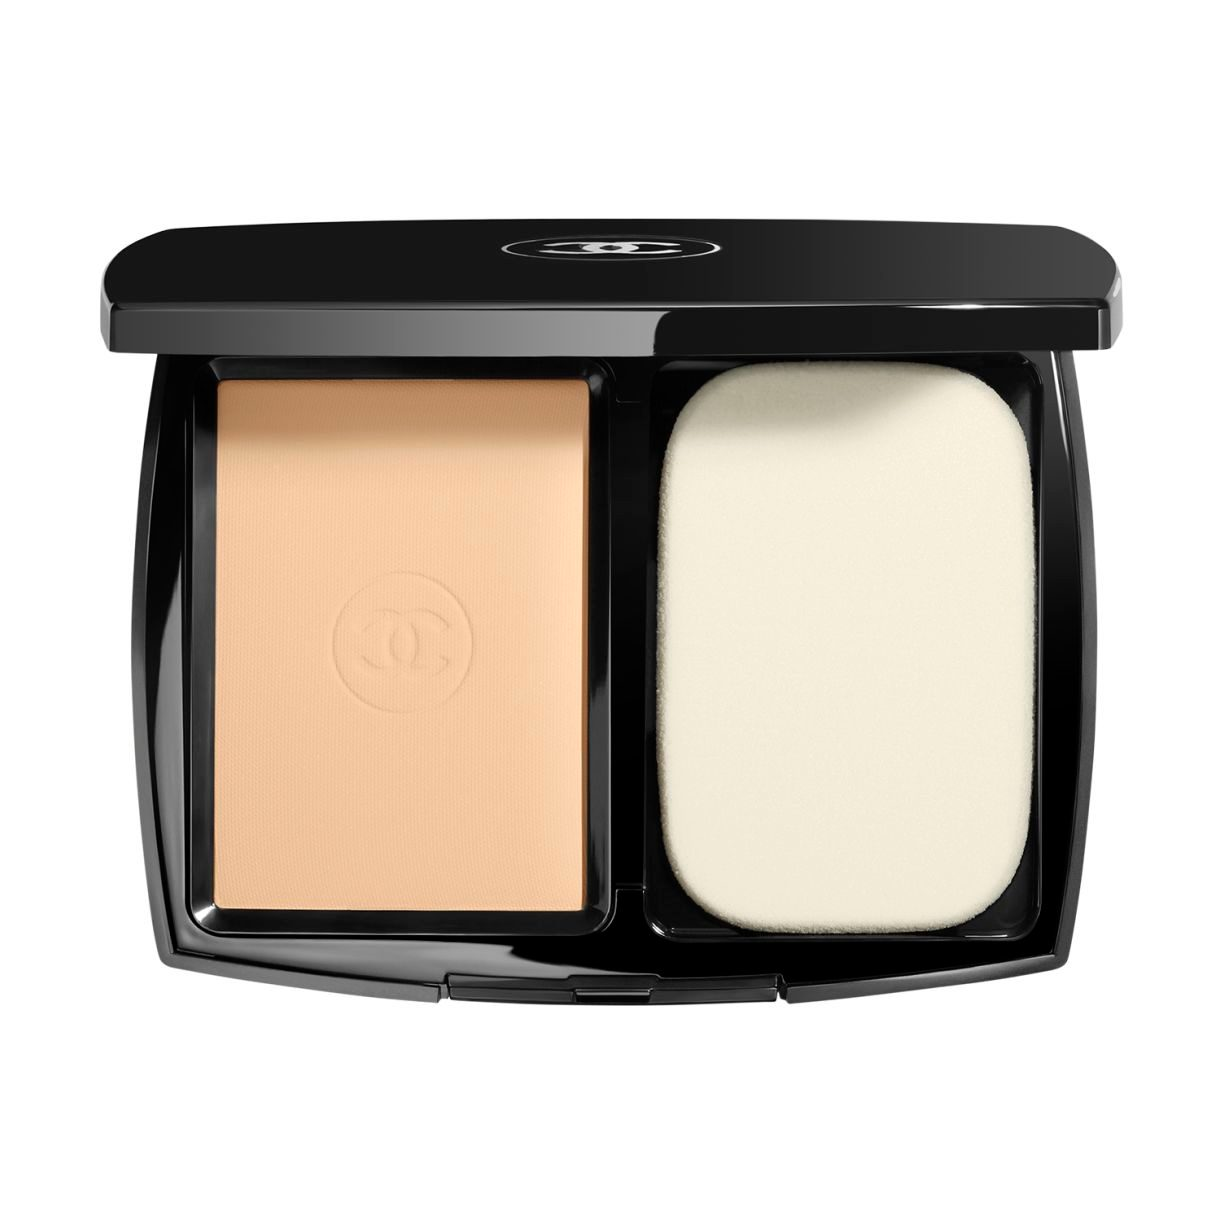 LE TEINT ULTRA TEINT COMPACT PERFECTION HAUTE TENUE FINI MAT LUMINEUX. SPF 15 10 - BEIGE